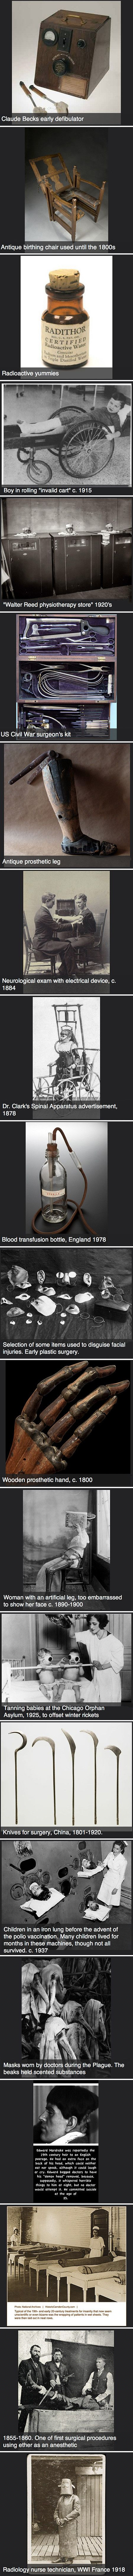 Here are some creepy medical pictures from the past that might scare you.